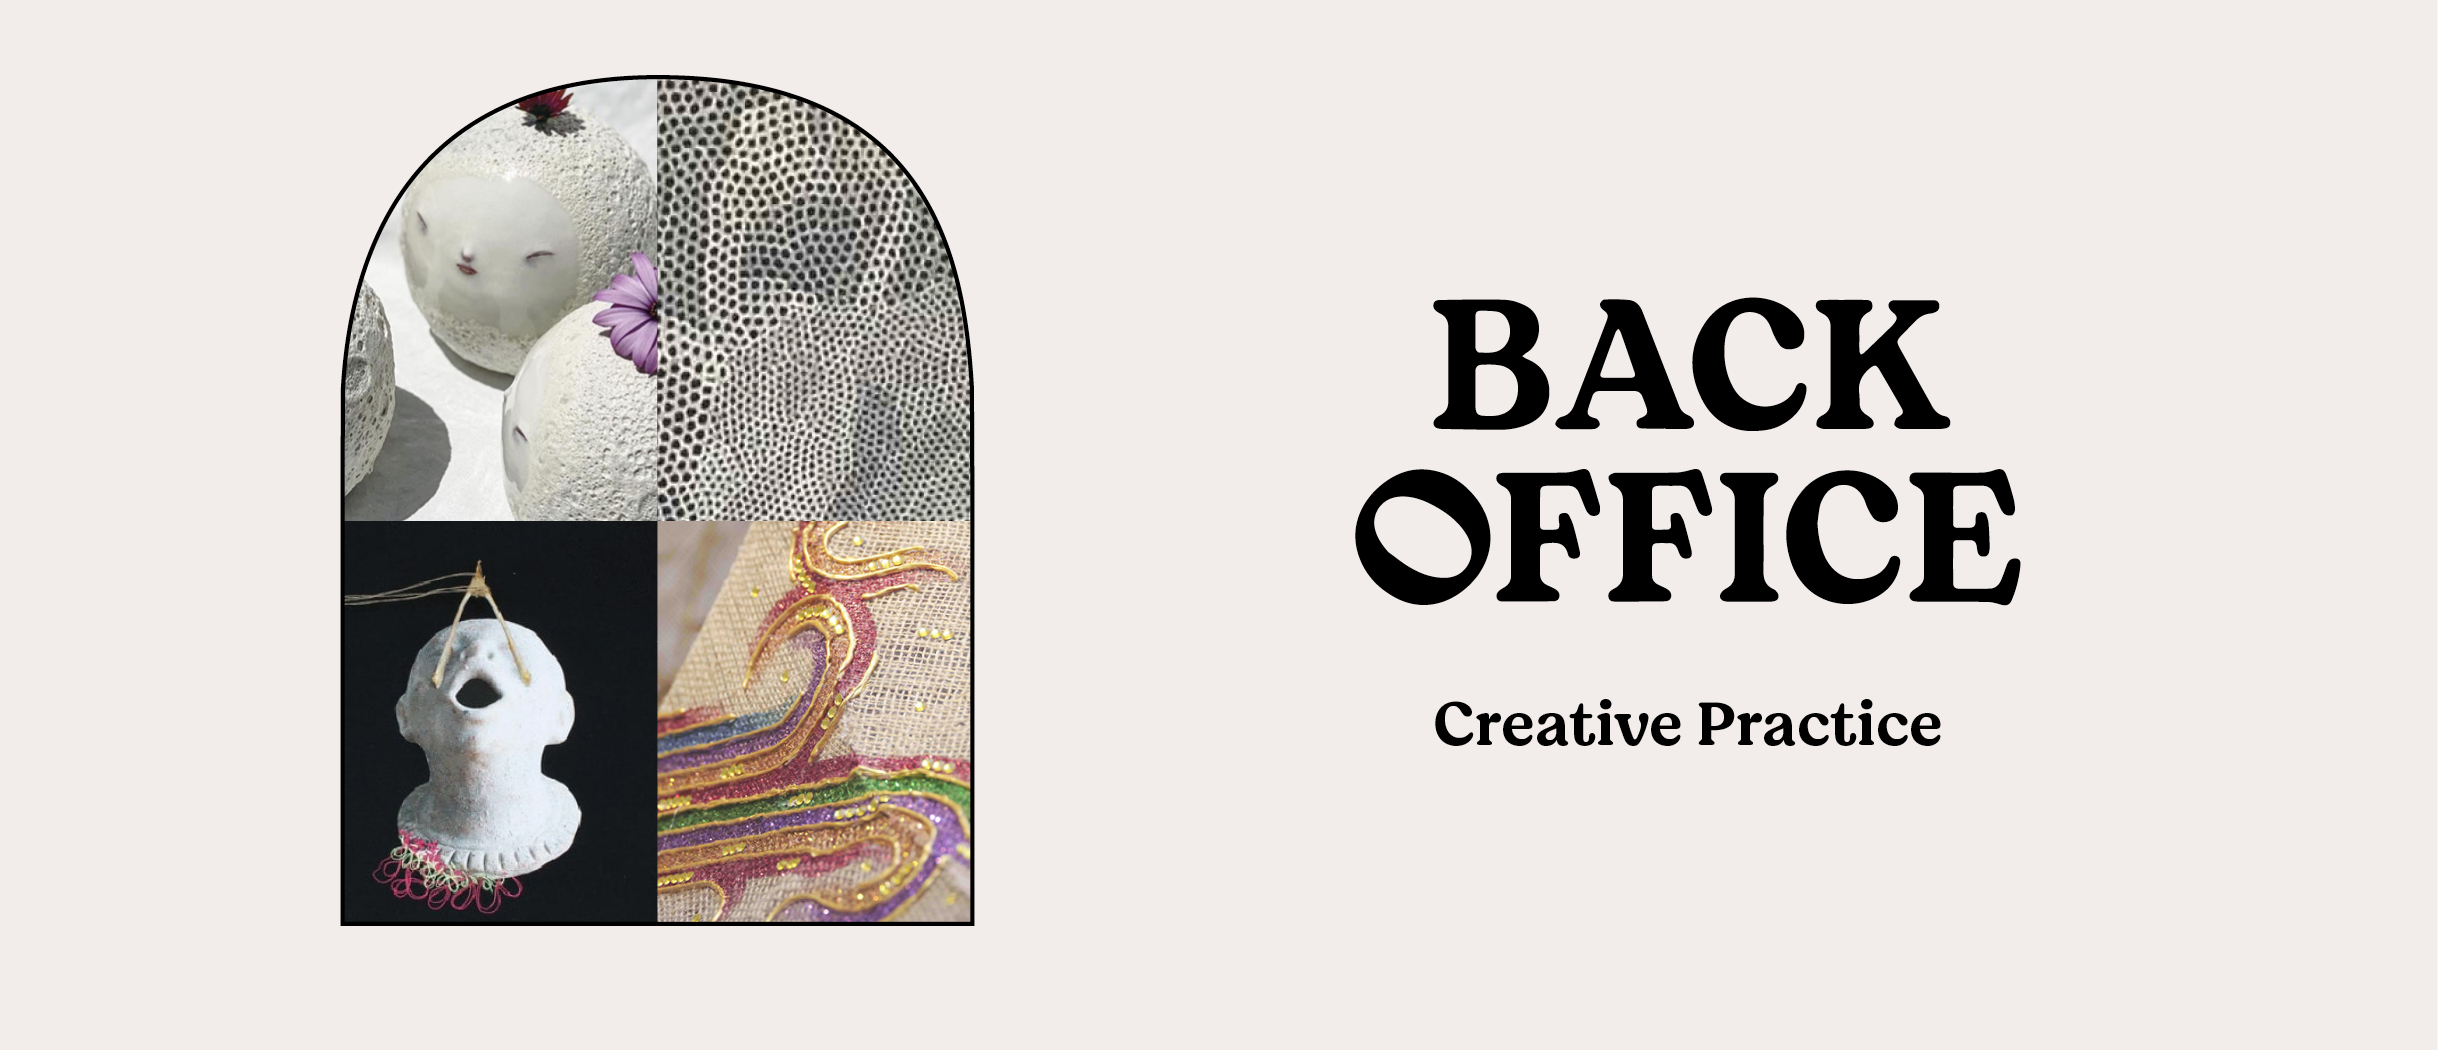 Back Office: Creative Practice